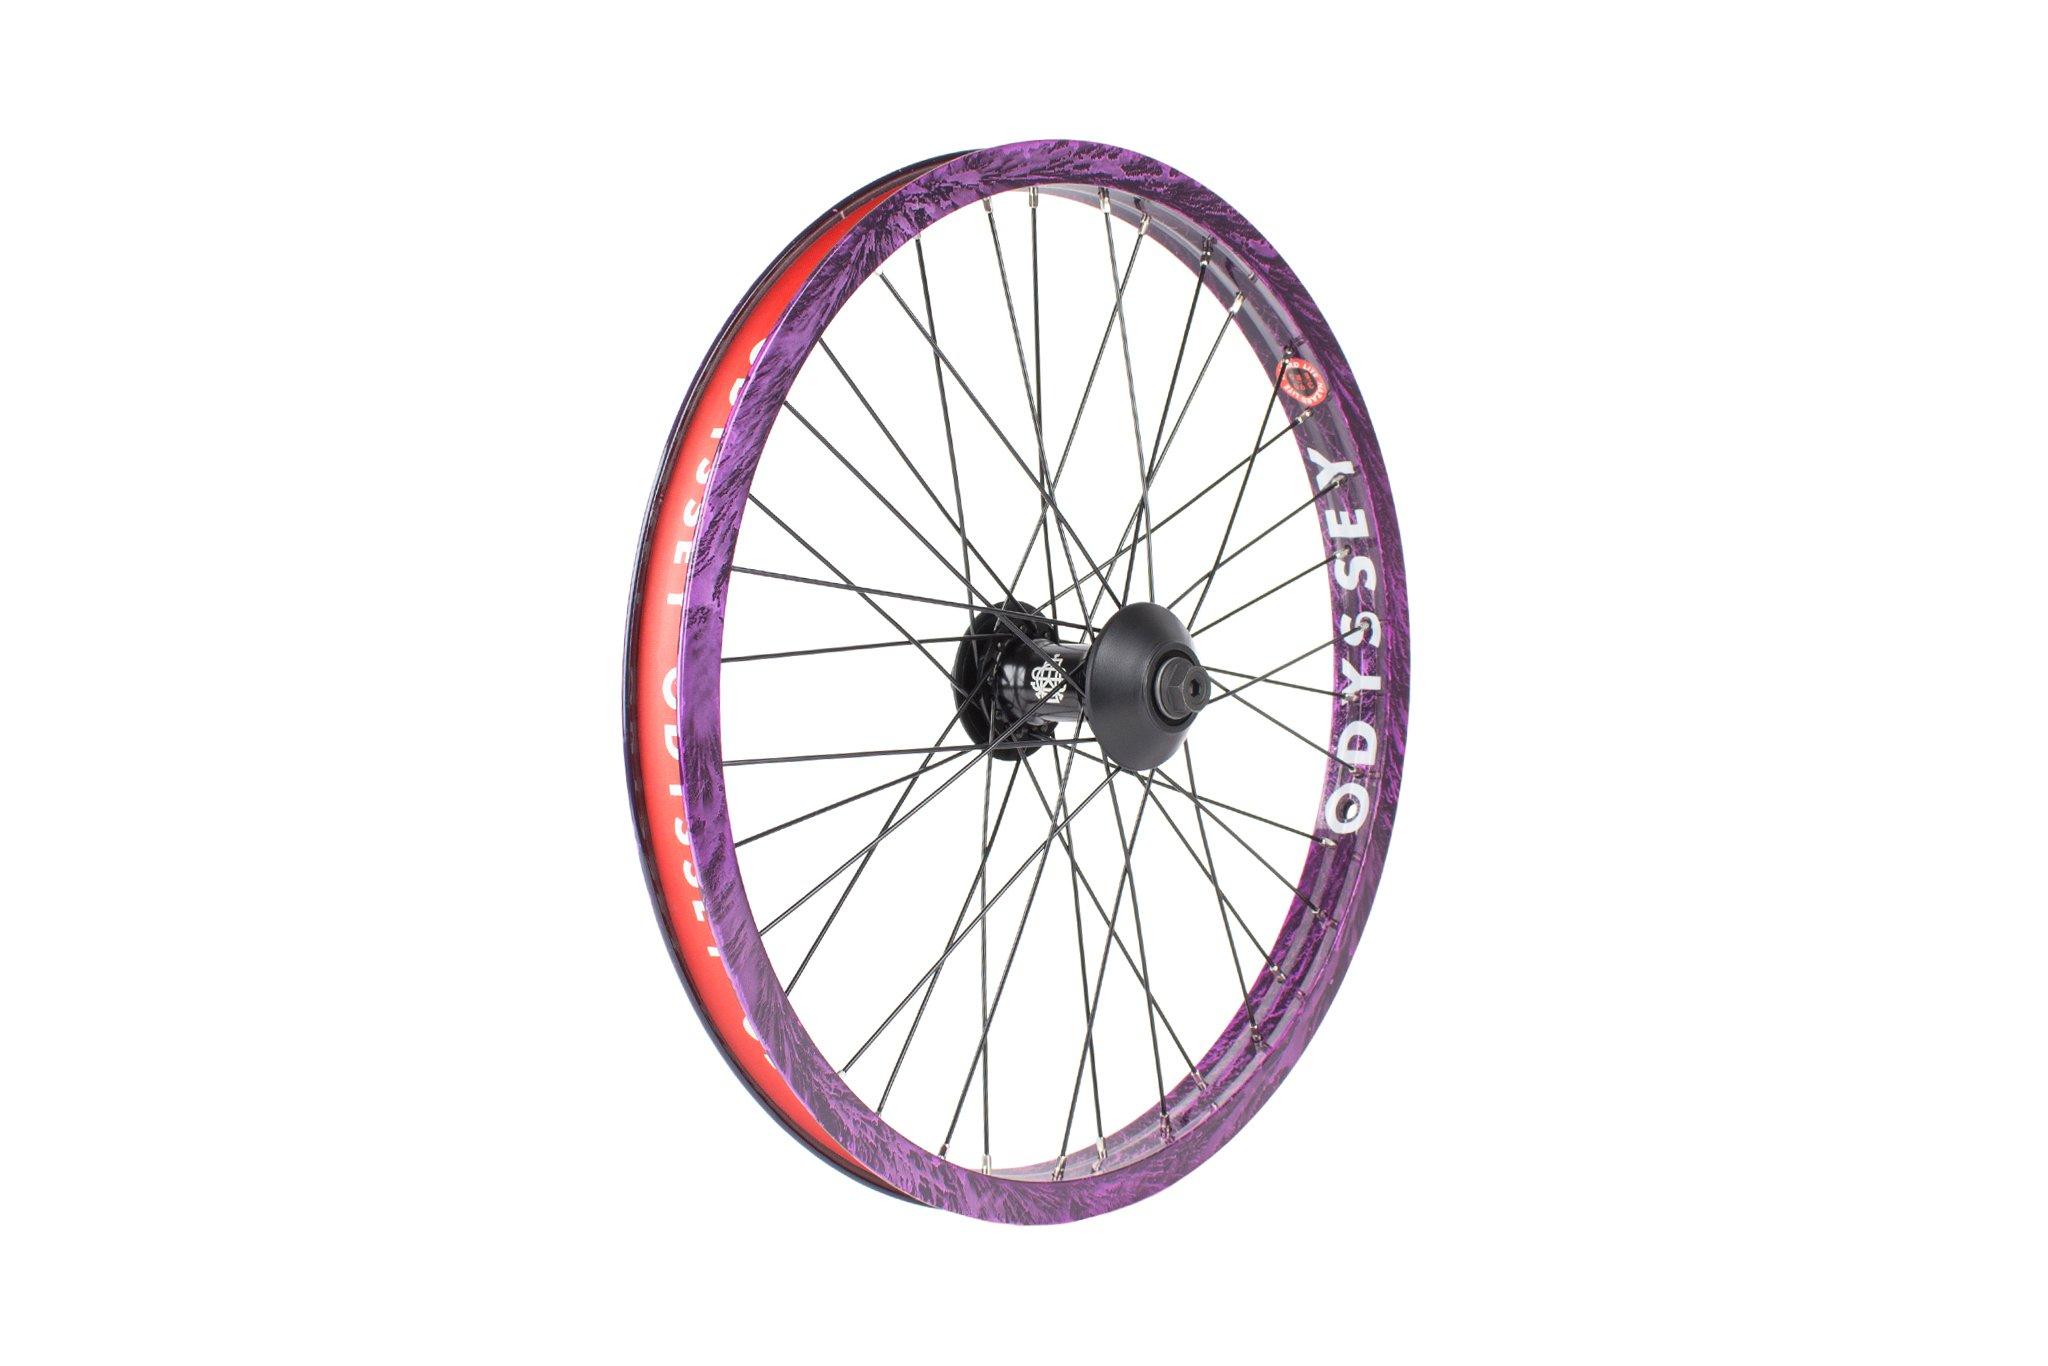 Odyssey BMX Hazard Lite Front Wheel im Limited Edition Purple Rain Colorway